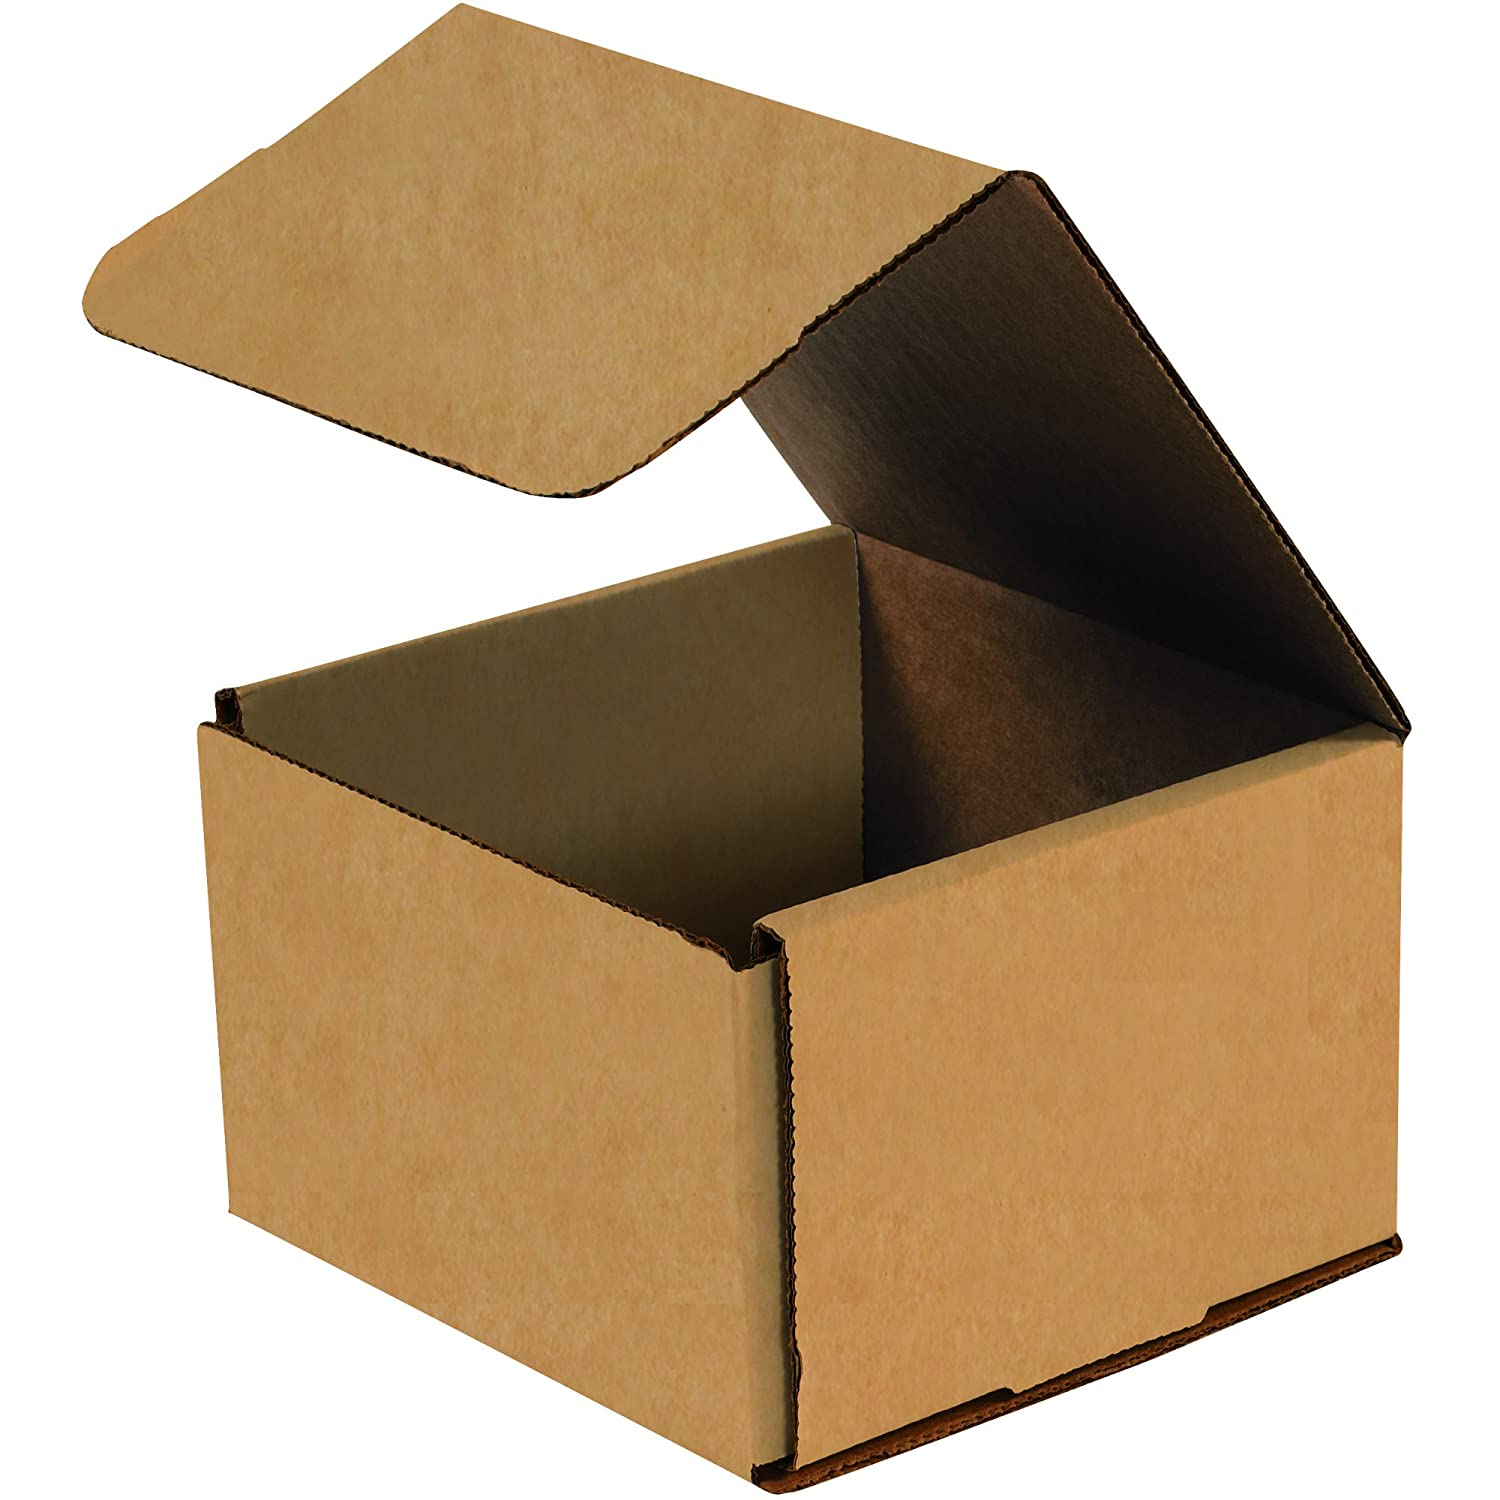 Aviditi Brown Kraft Corrugated Cardboard Mailing Boxes, 8 x 8 x 4 Inches, Pack of 50, Crush-Proof, for Shipping, Mailing and Storing